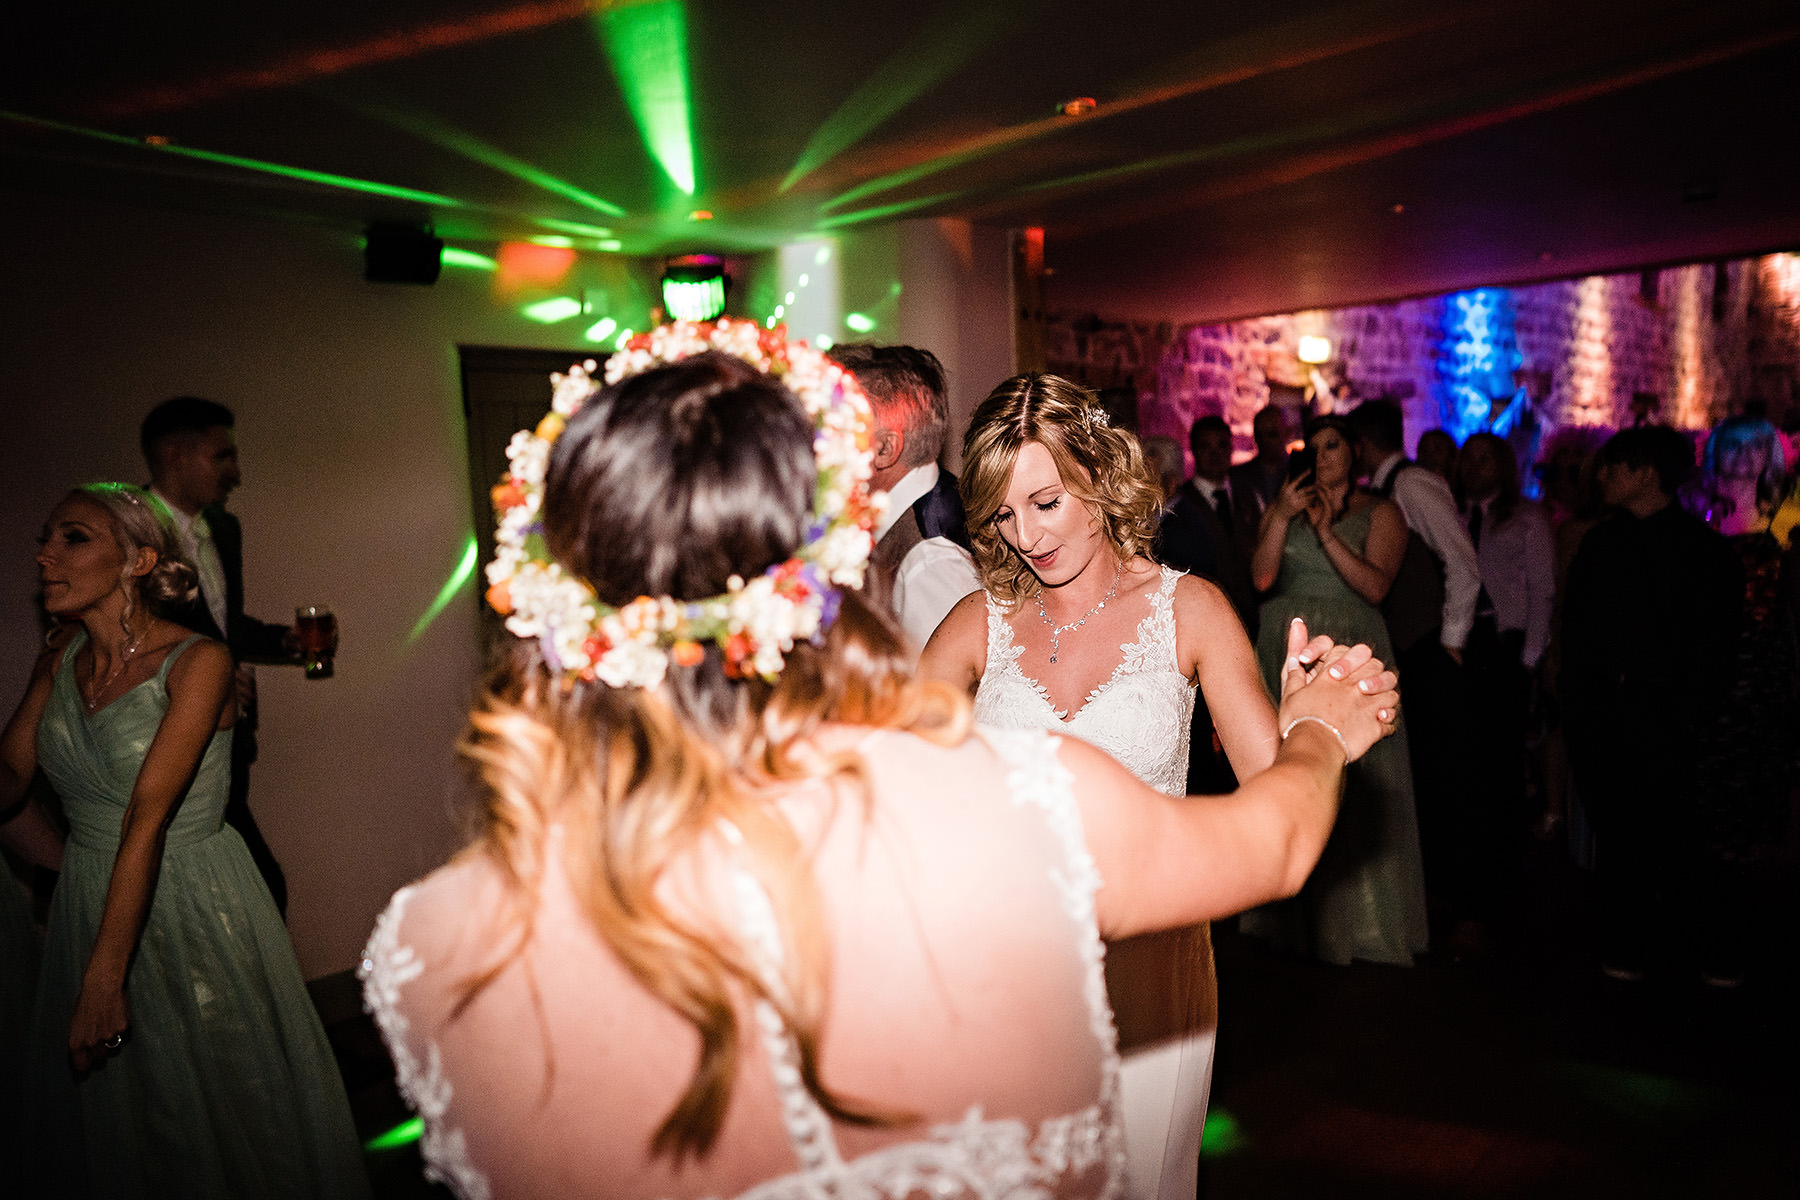 dance floor action during the wedding at The Ashes